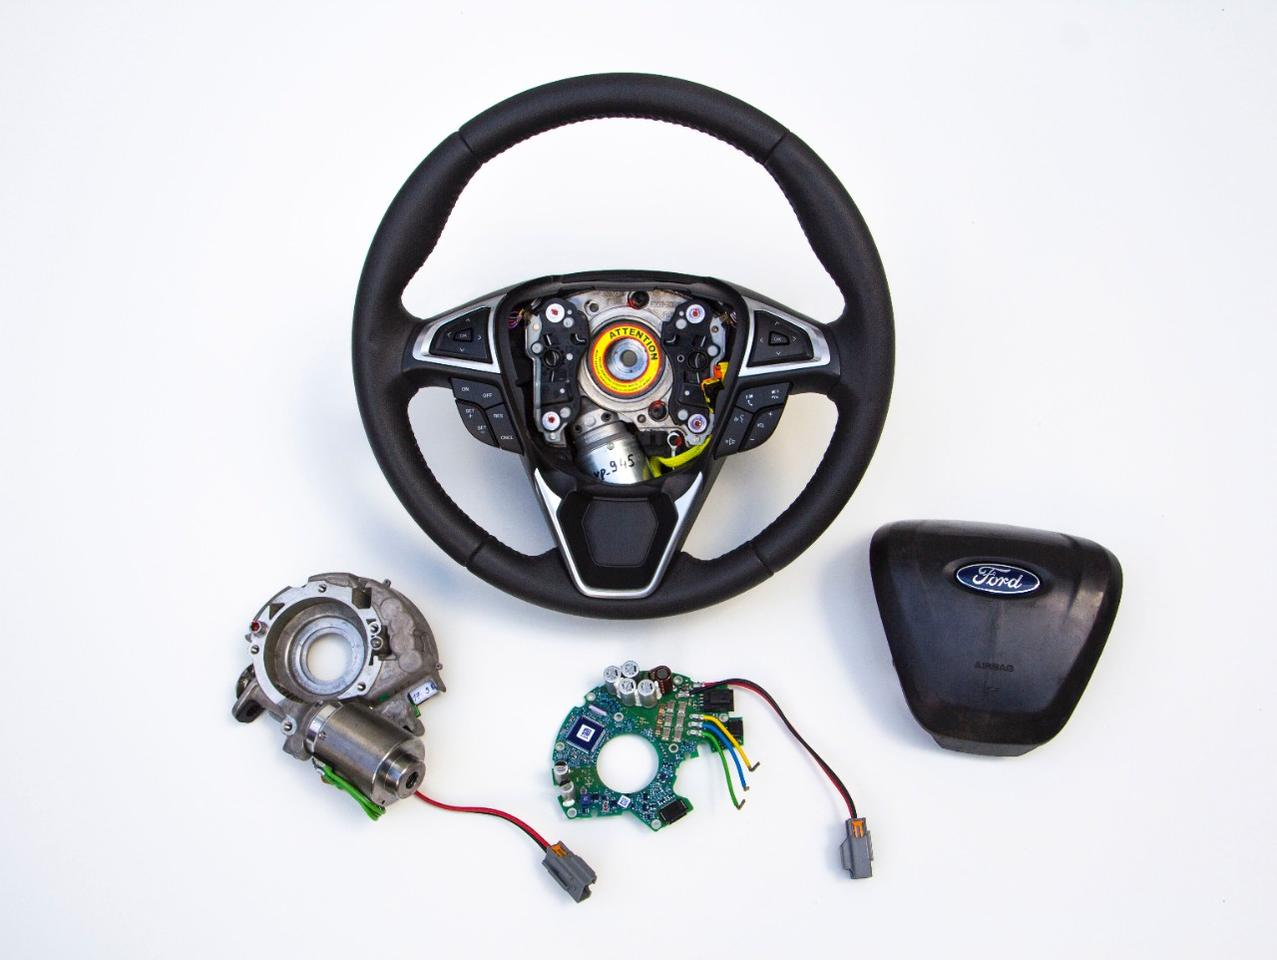 Ford's Adaptive Steering system uses an actuator placed inside the steering wheel